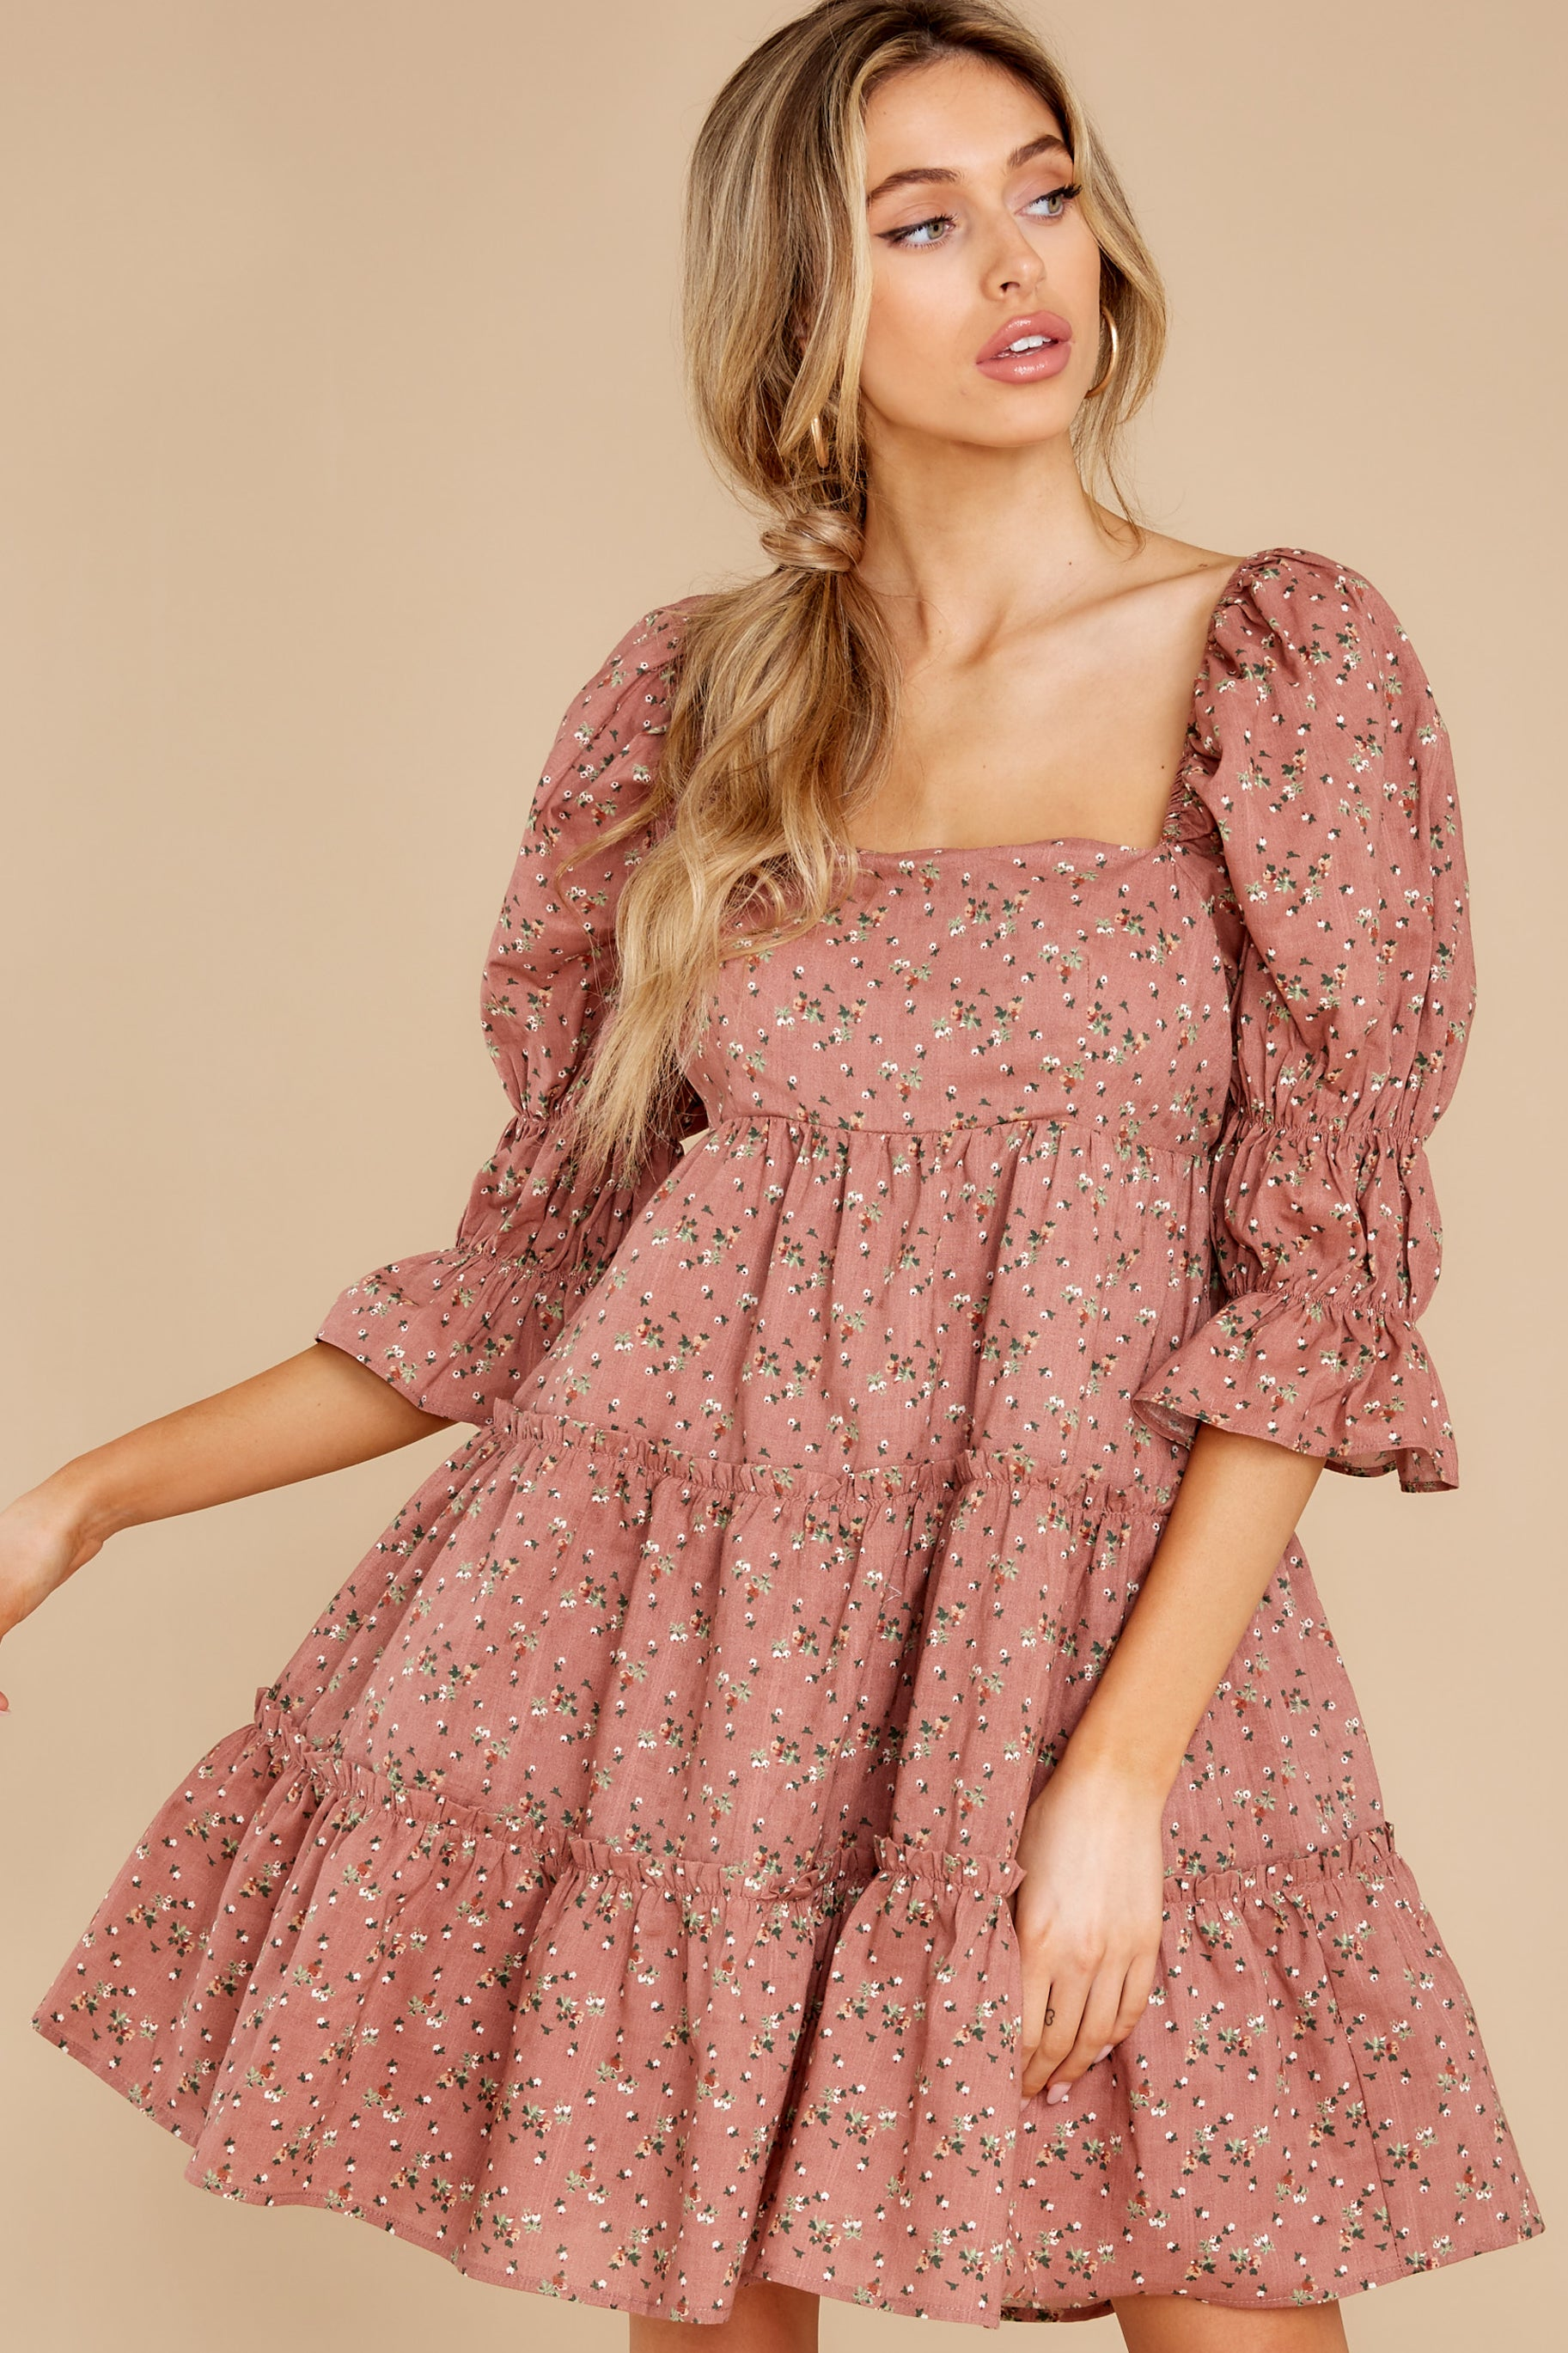 Cottagecore Clothing, Soft Aesthetic Genuine Smiles Dusty Rose Floral Print Dress $56.00 AT vintagedancer.com